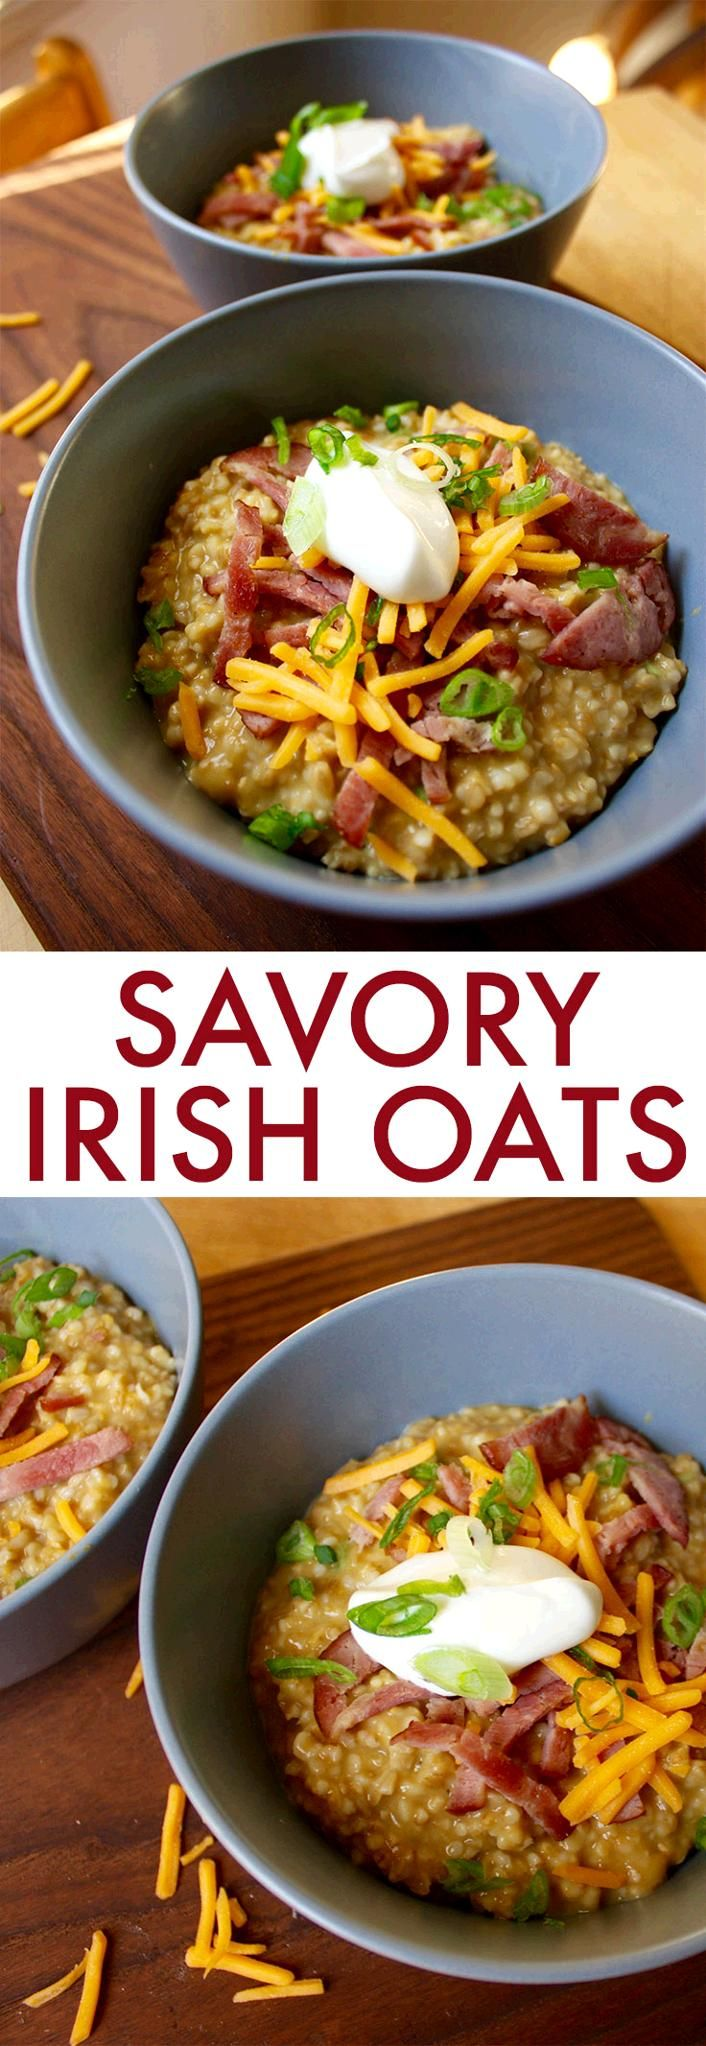 Savory Irish Oats With Turkey Bacon Cheddar And Chives Recipe Food Recipes Healthy